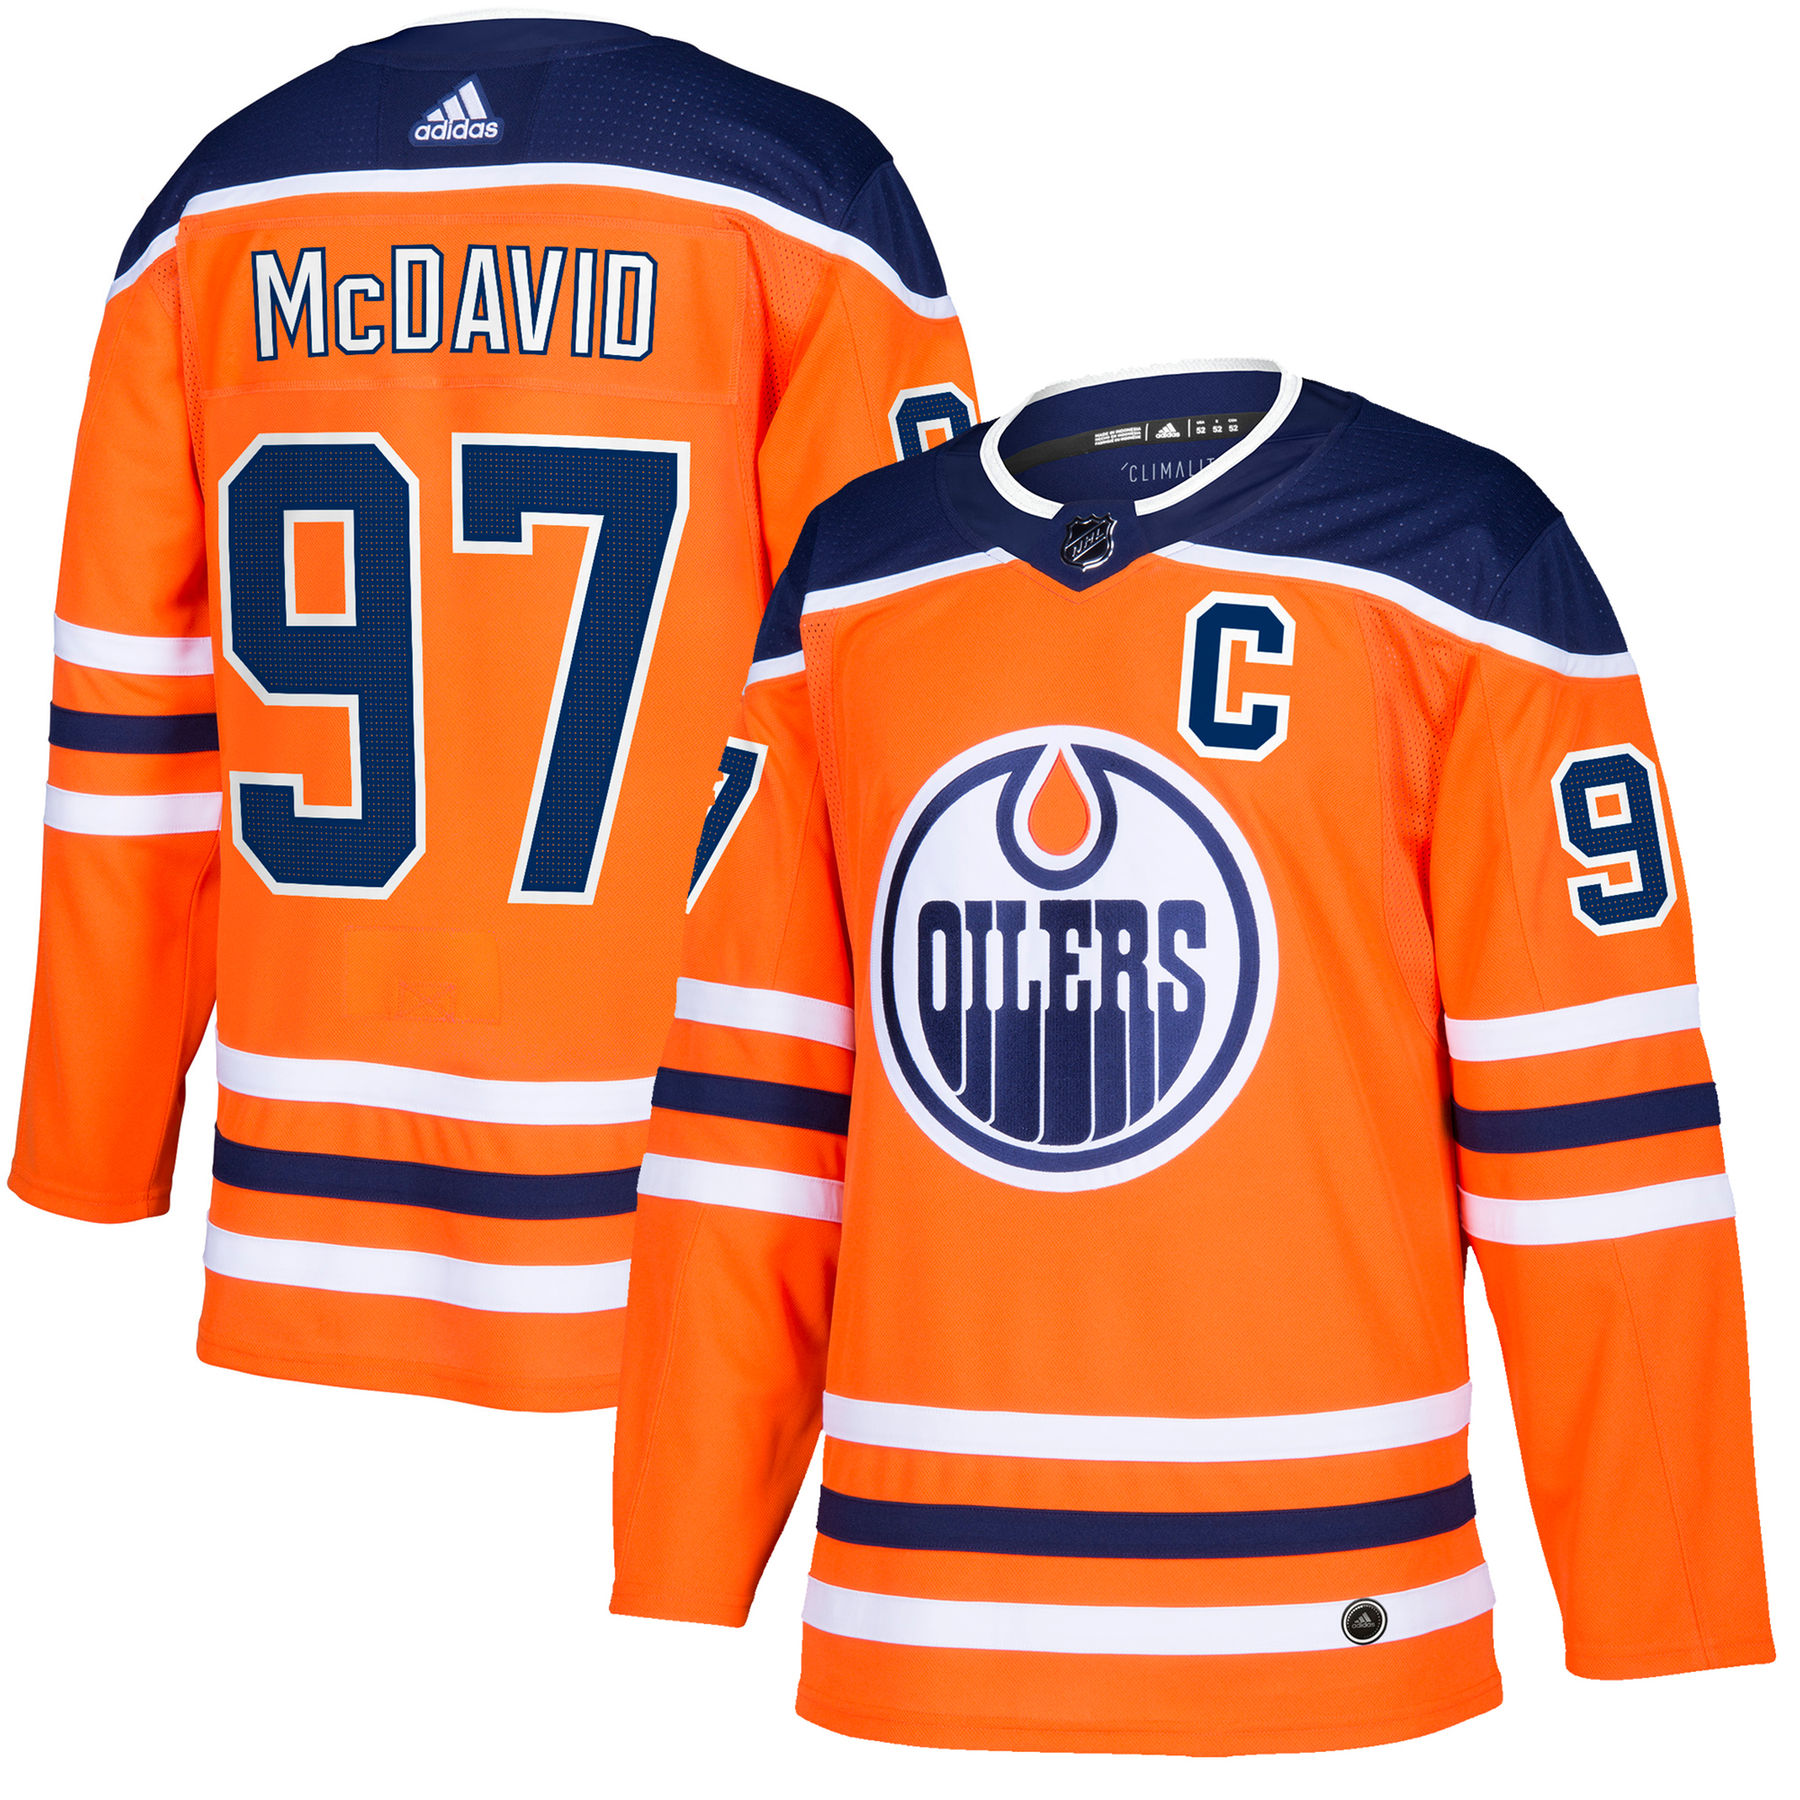 ffc8a6899 Connor McDavid Edmonton Oilers adidas NHL Authentic Pro Home ...